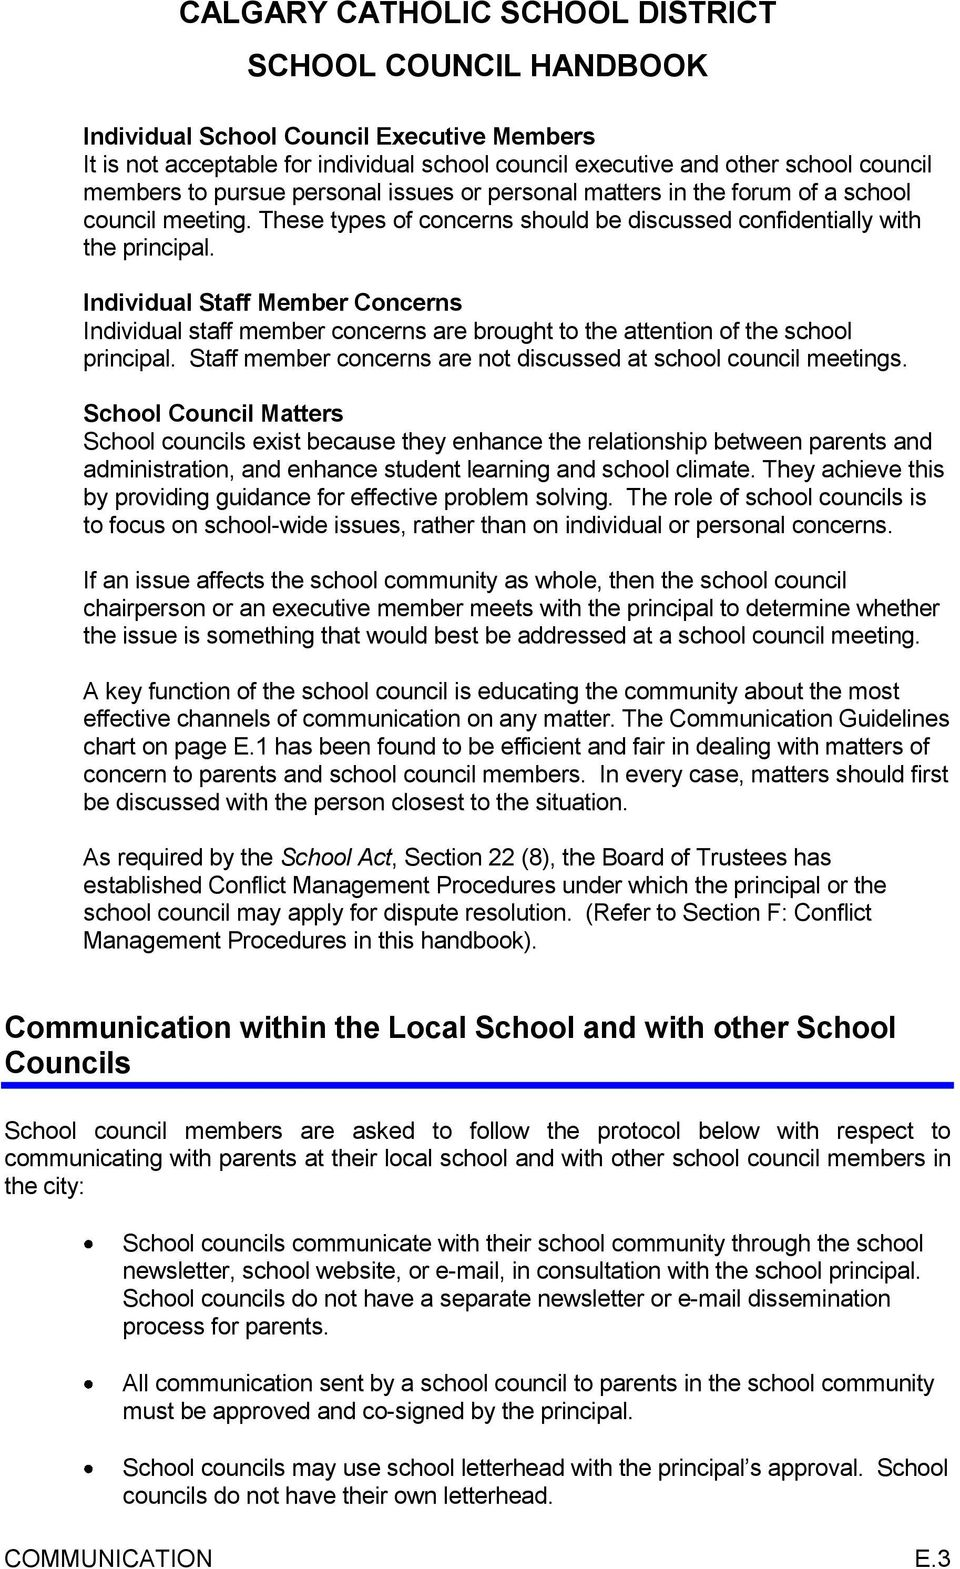 Individual Staff Member Concerns Individual staff member concerns are brought to the attention of the school principal. Staff member concerns are not discussed at school council meetings.